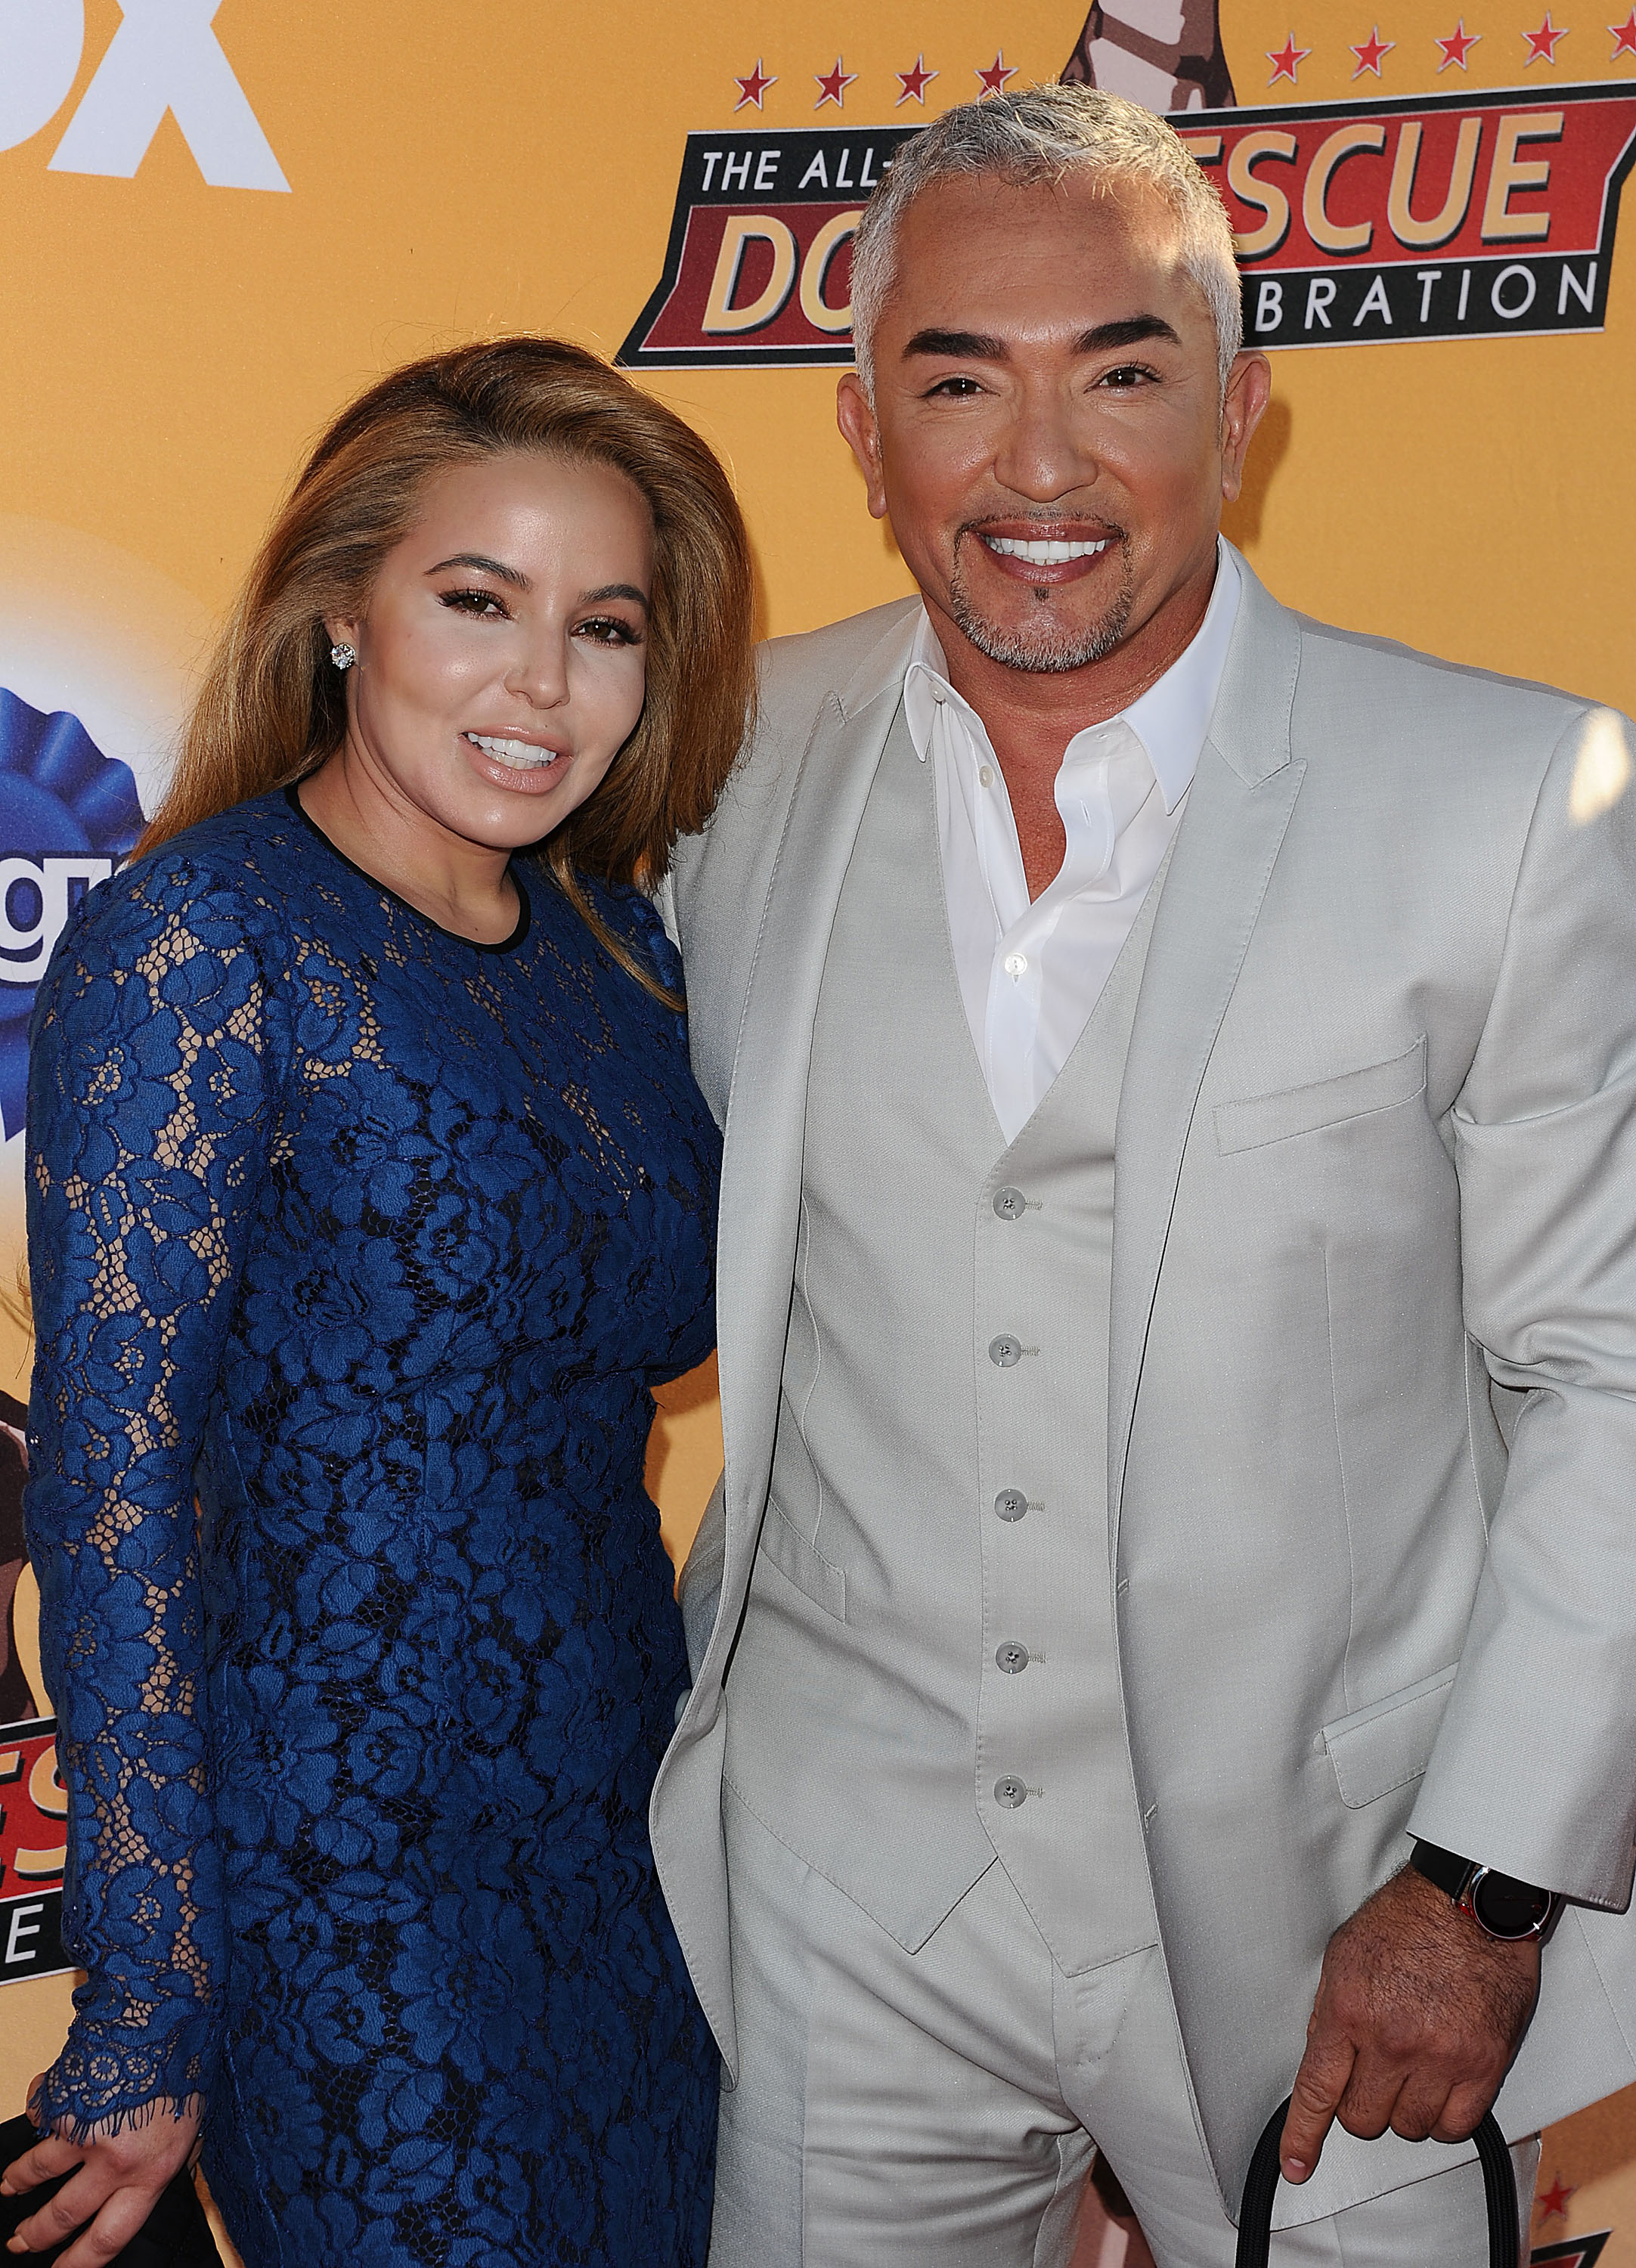 Cesar Millan And Jahira Dar Are Engaged After 6 Years Of Dating